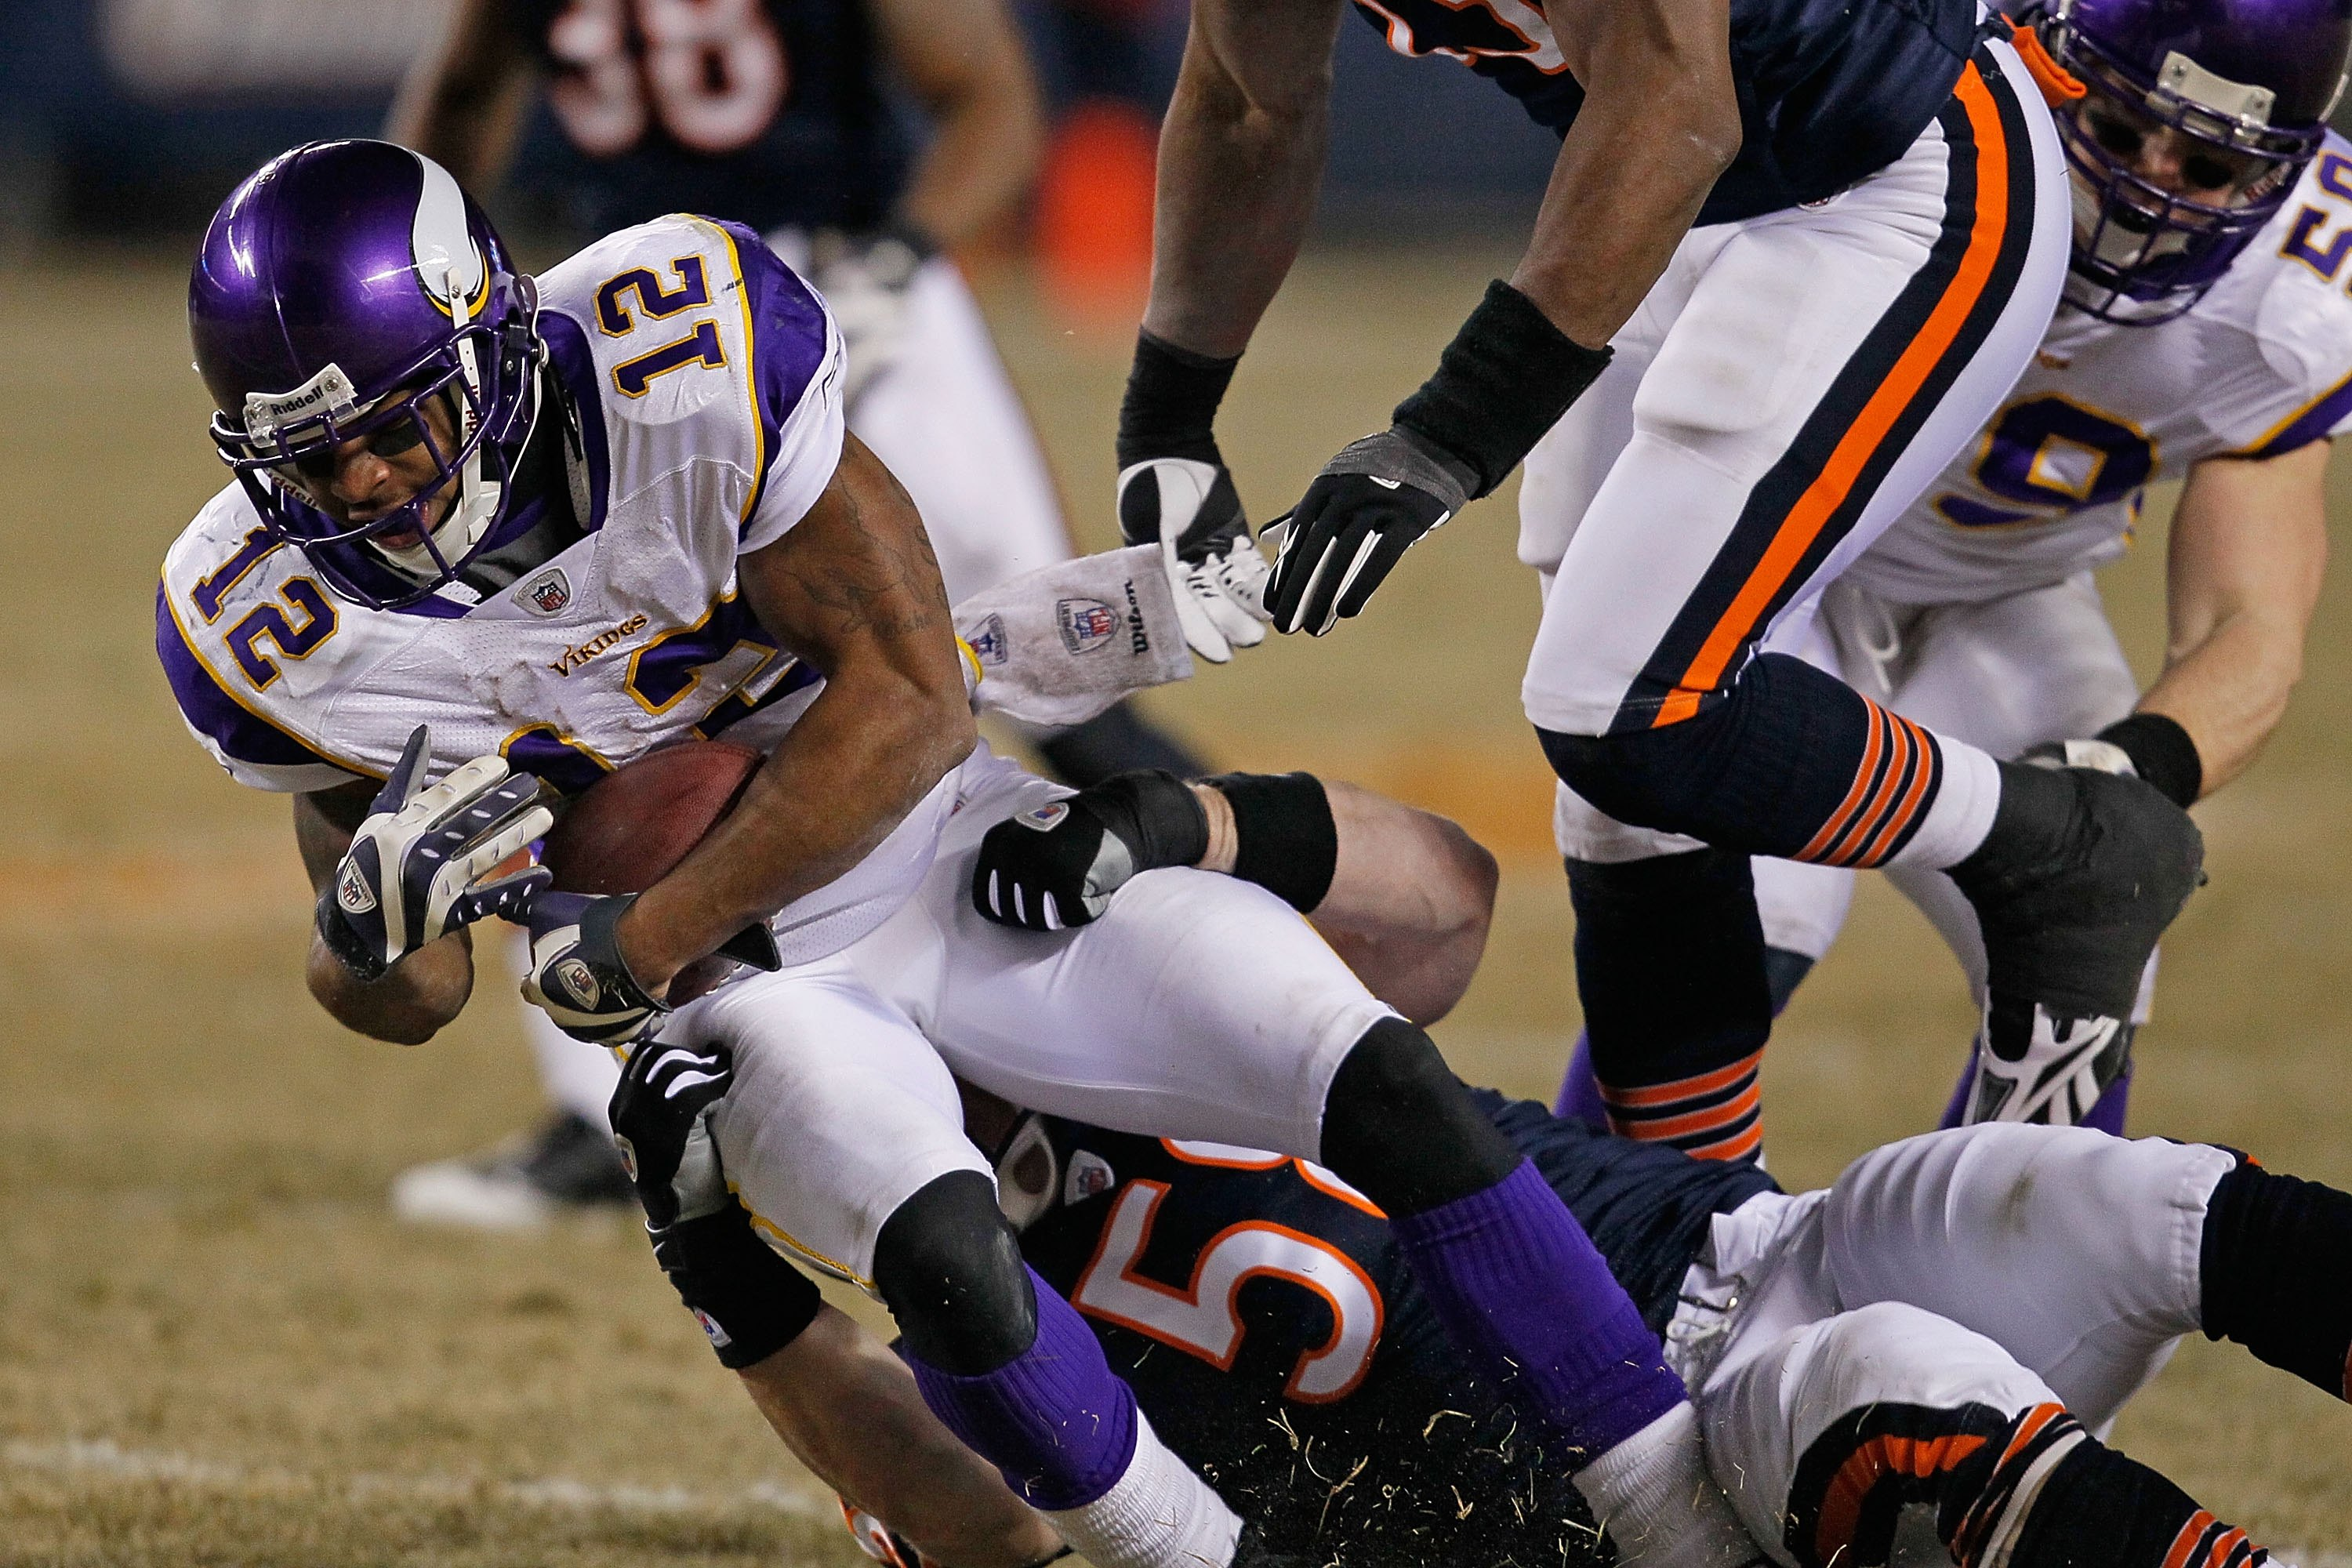 CHICAGO - DECEMBER 28: Percy Harvin #12 of the Minnesota Vikings is tackled by Tim Shaw #58 of the Chicago Bears at Soldier Field on December 28, 2009 in Chicago, Illinois. The Bears defeated the Vikings 36-30 in overtime.  (Photo by Jonathan Daniel/Getty